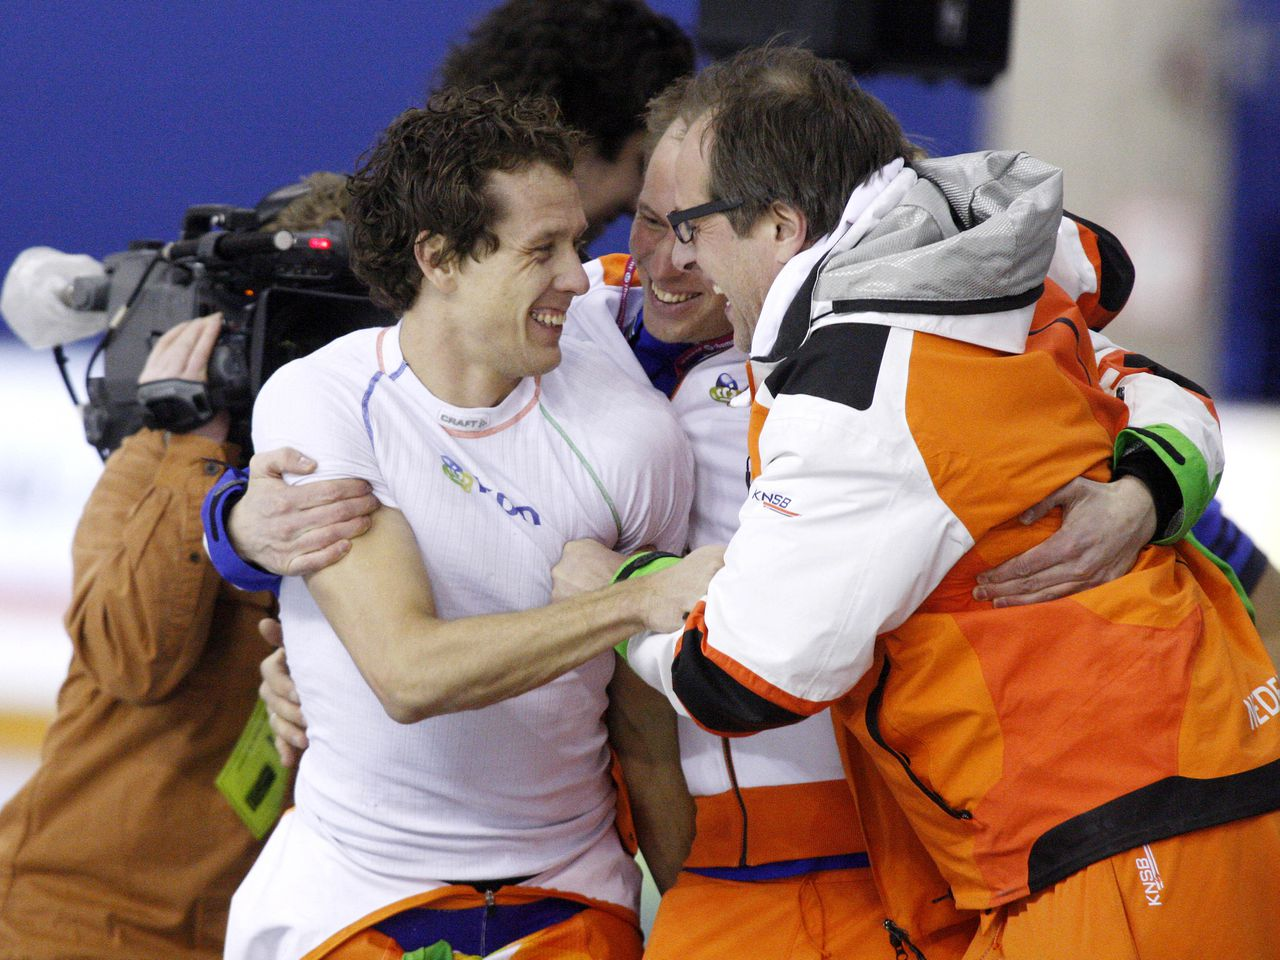 Holland's sprint speed skater Stefan Groothuis celebrates with coaches and teammates after winning World Championship at the ISU World Sprint Speed Skating Championships in Calgary, Alberta, Canada January 29, 2012. AFP PHOTO/DAVE BUSTON